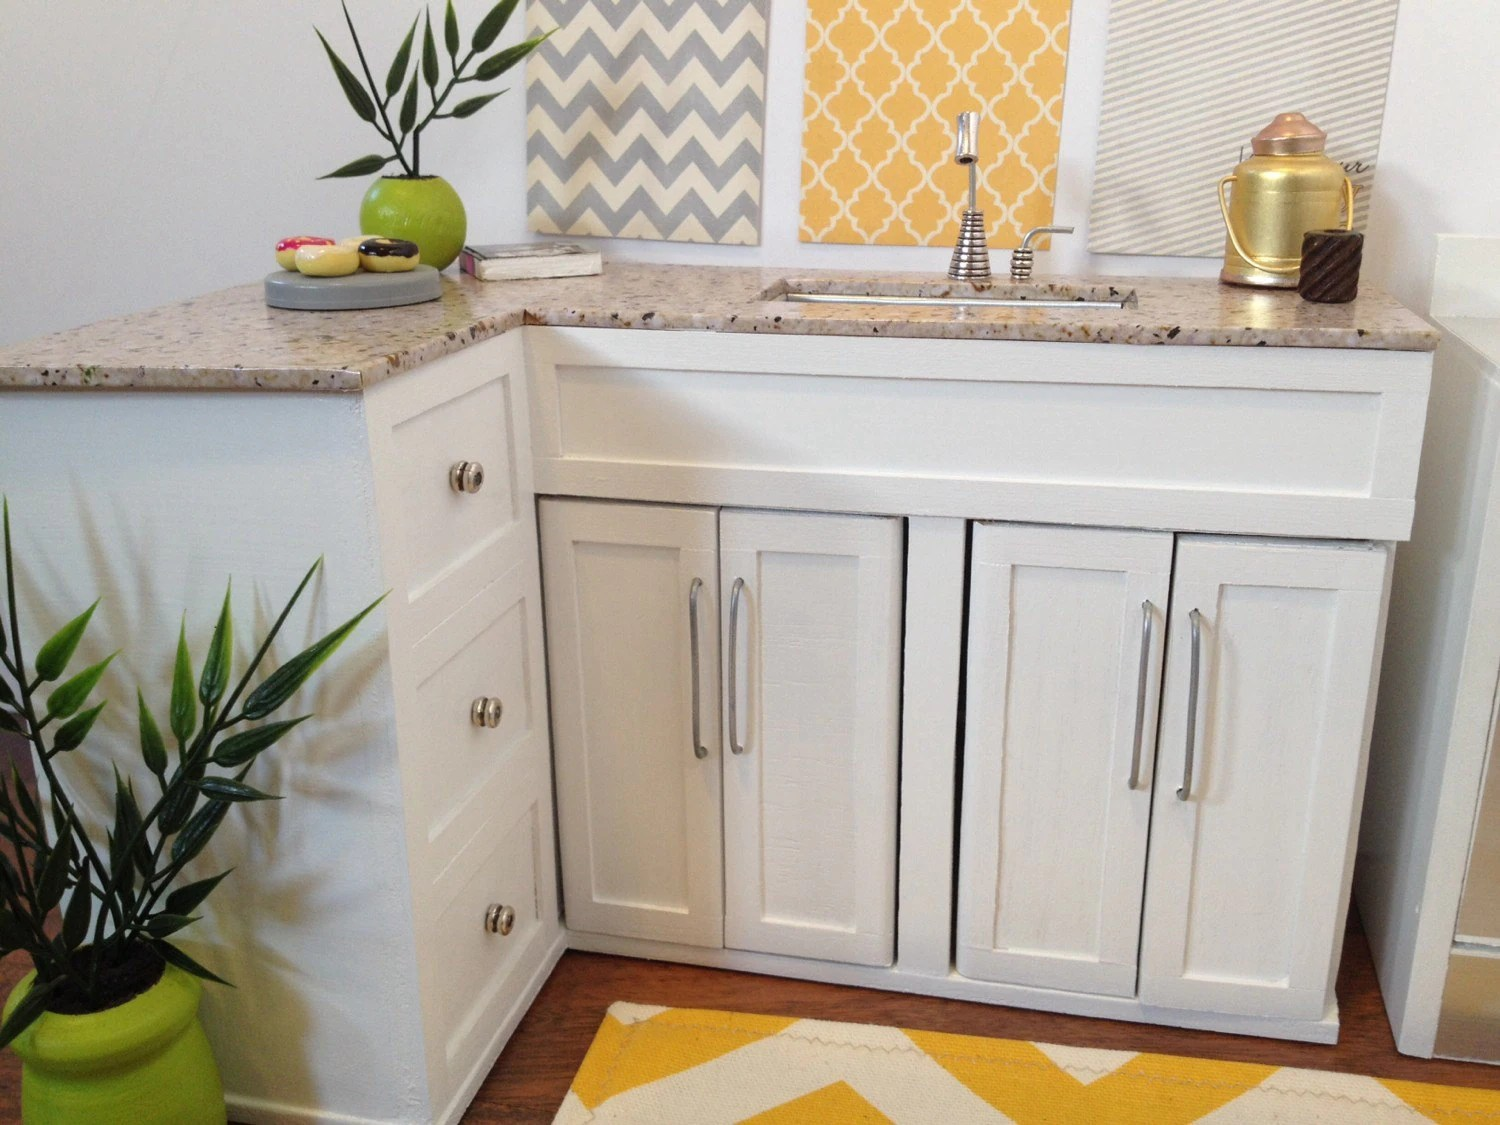 L Shaped Kitchen Sink L Shaped Kitchen Sink Best Home Renovation 2019 By Kelly